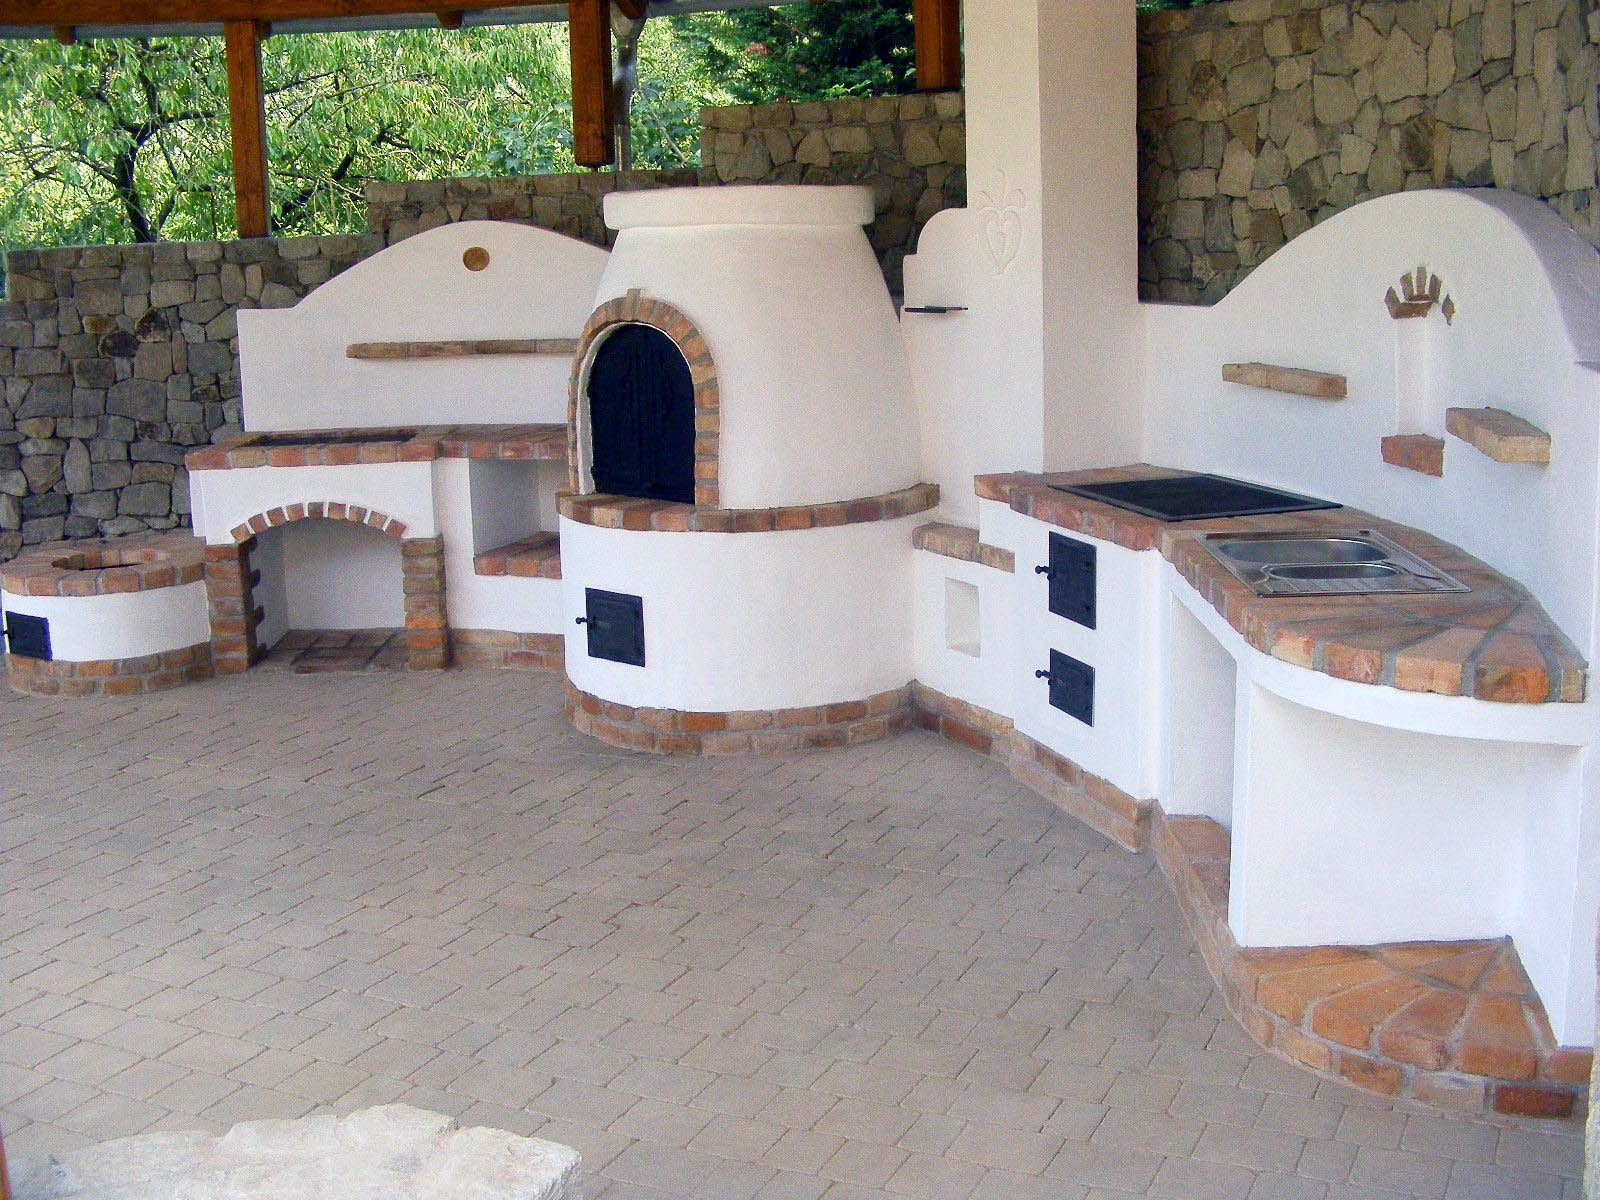 27 Incredible Outdoor Cooking Area Suggestions Your Guests Will Certainly Go Crazy For Outdoor Kitchen Outdoor Kitchen Design Pizza Oven Outdoor